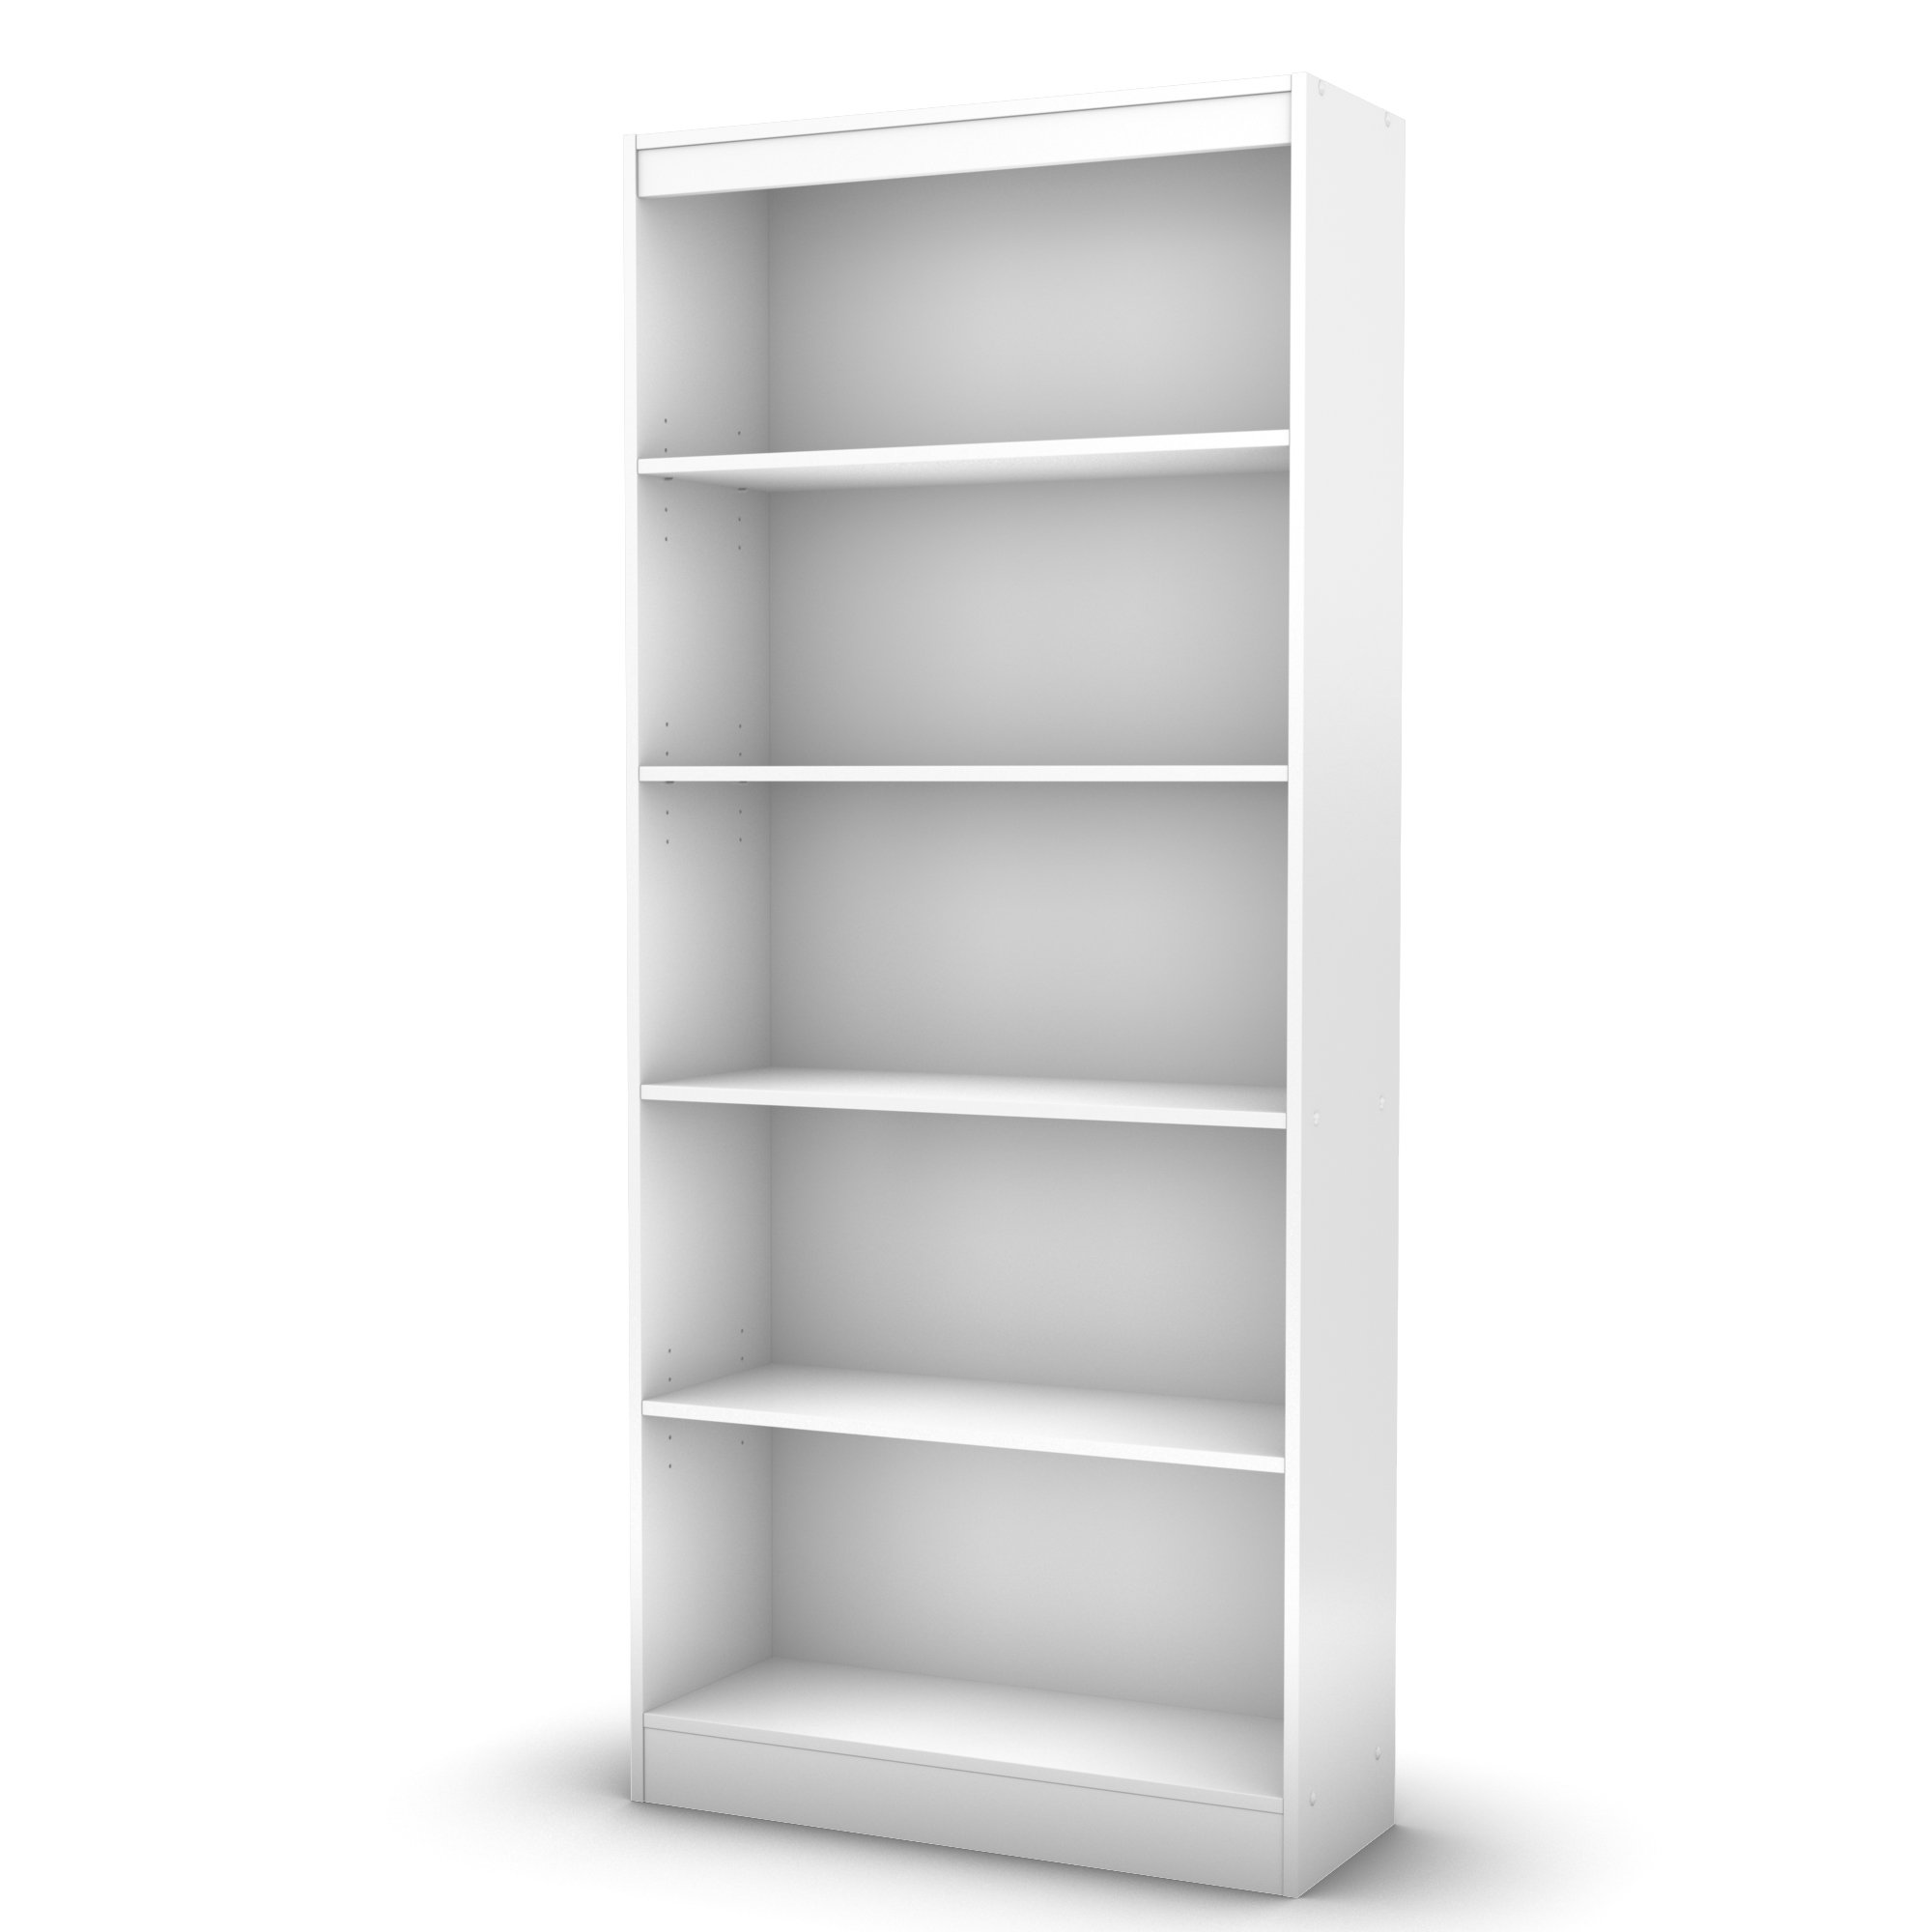 South Shore 5-Shelf Storage Bookcase, Pure White by South Shore